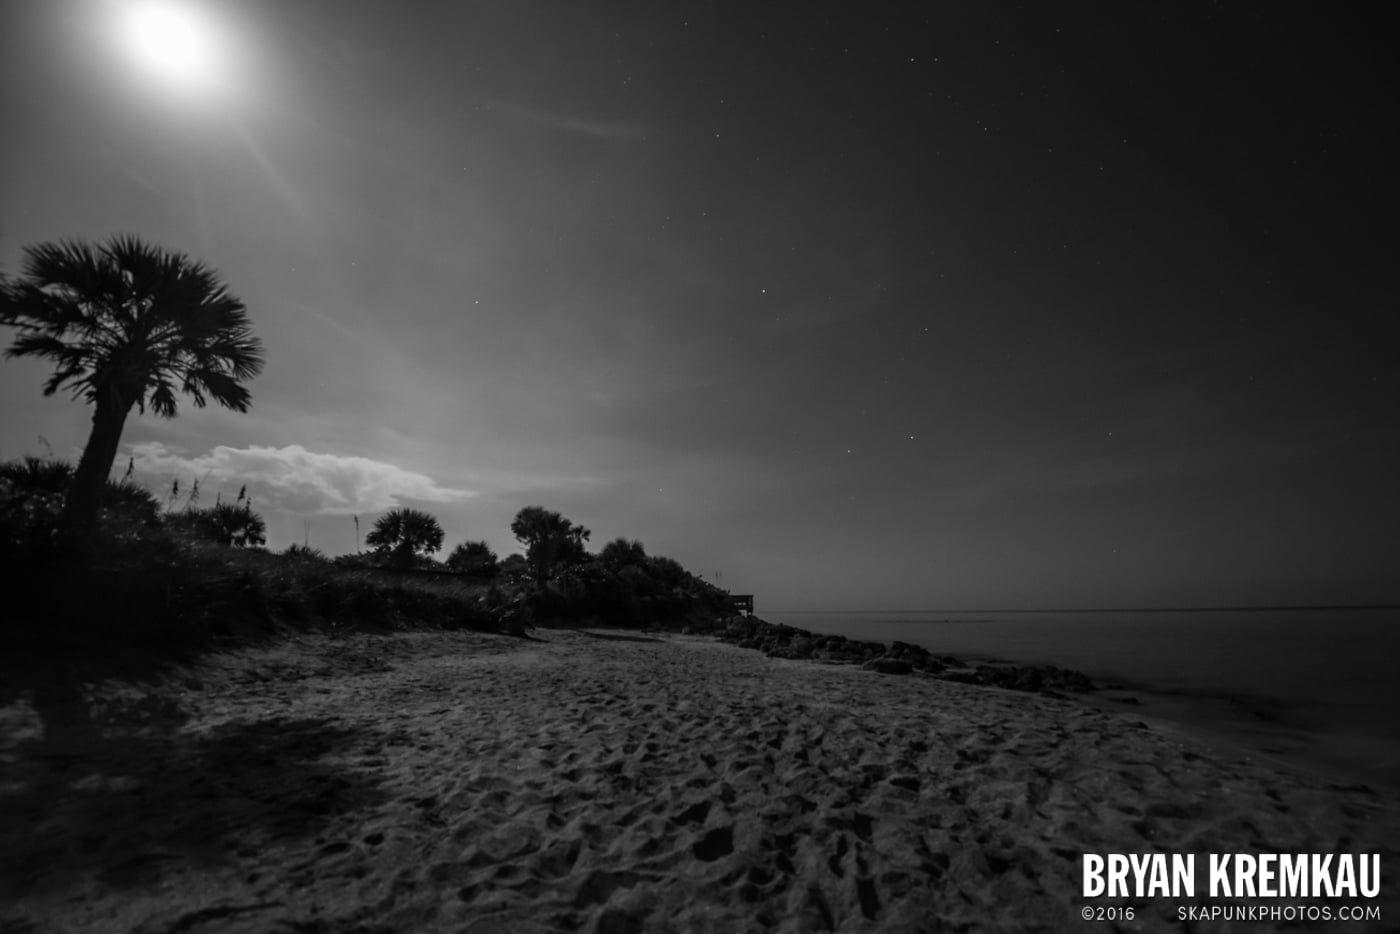 Sunsets, Astrophotography & Birds @ Venice, Florida - 10.25.14 - 11.5.14 (29)